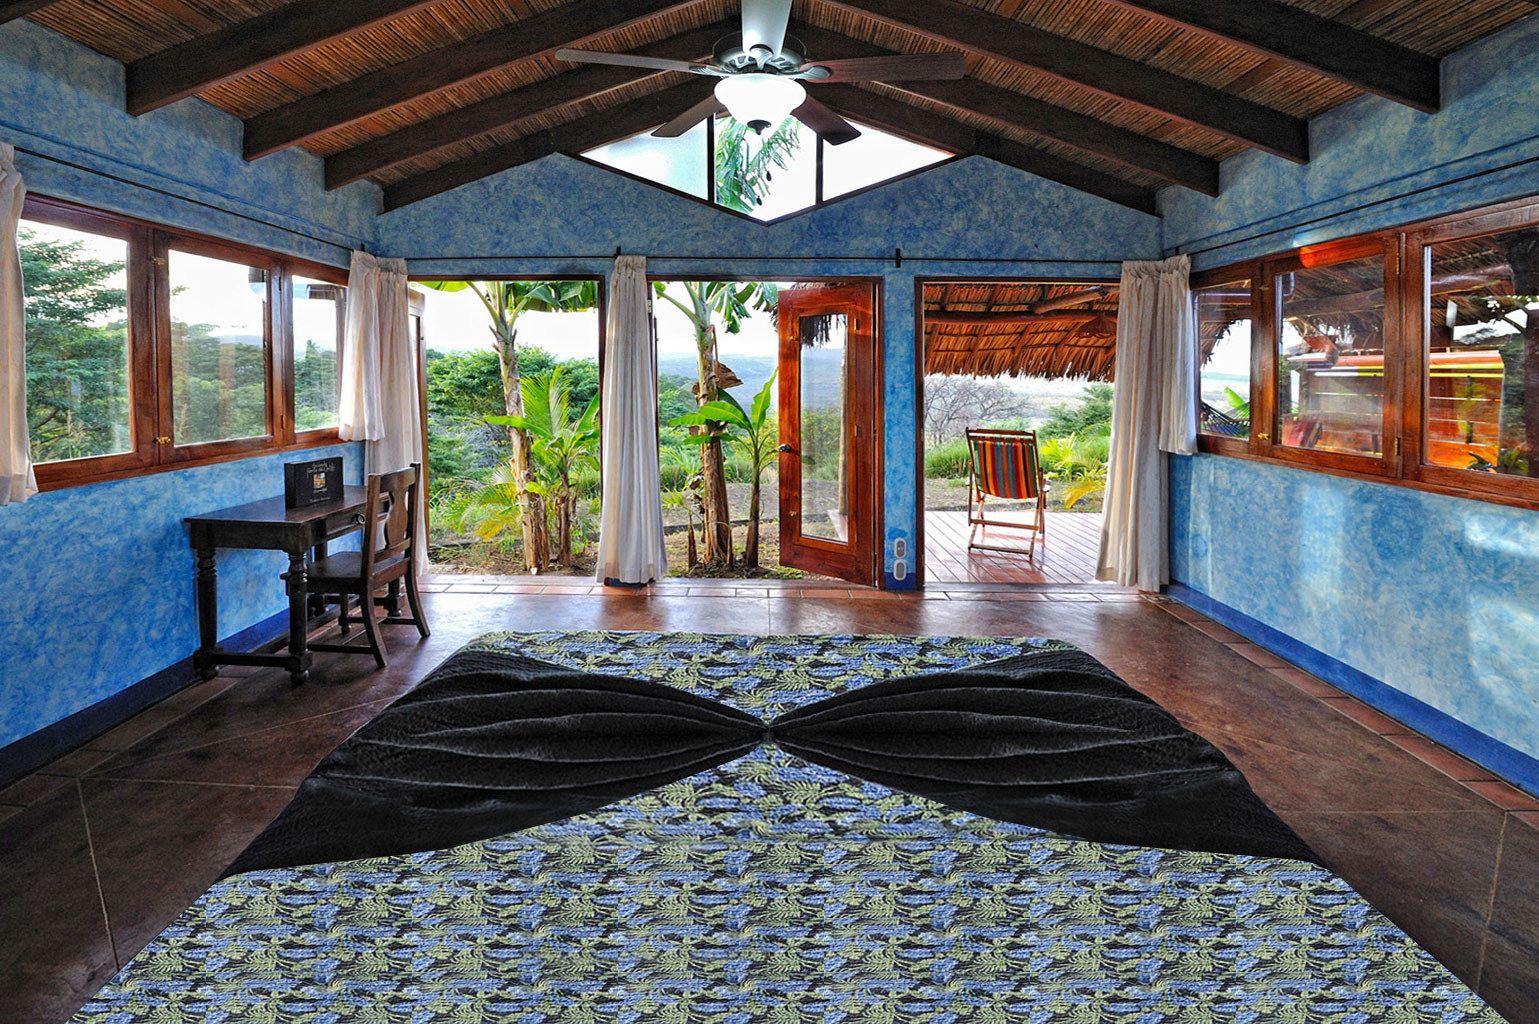 Rustic building property house Resort home porch cottage mansion backyard outdoor structure stone